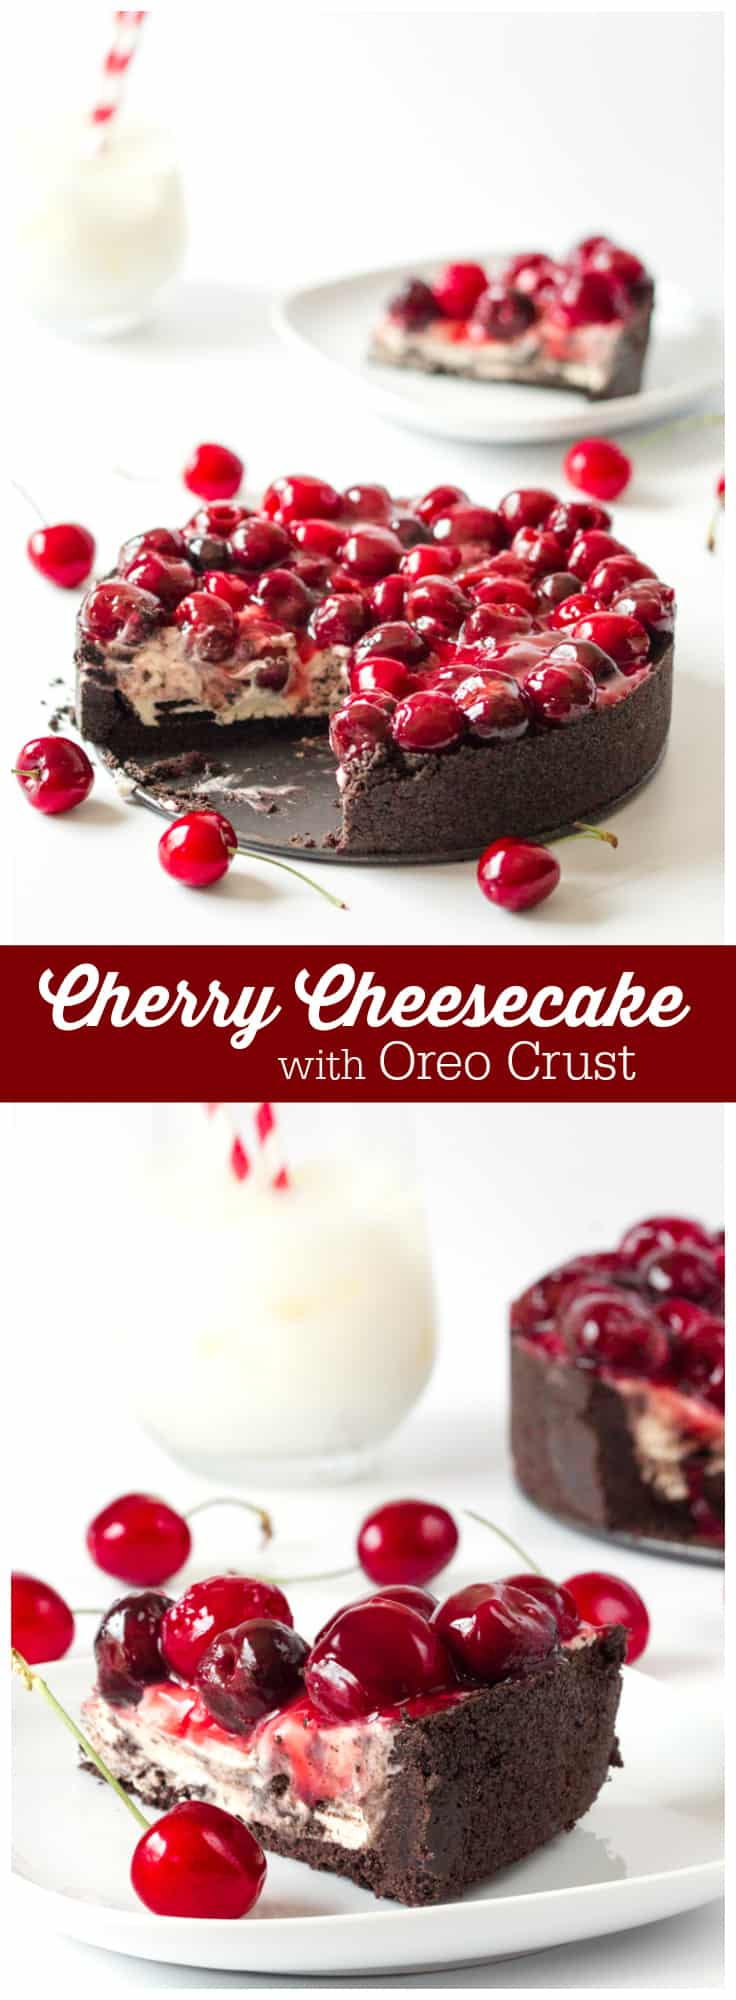 Cherry Cheesecake with Oreo Crust - Chocolate and cherry combine for this decadent dessert! The sweet cheesecake filling melds perfectly with the crunchy cookie crust for a delicious and beautiful treat.